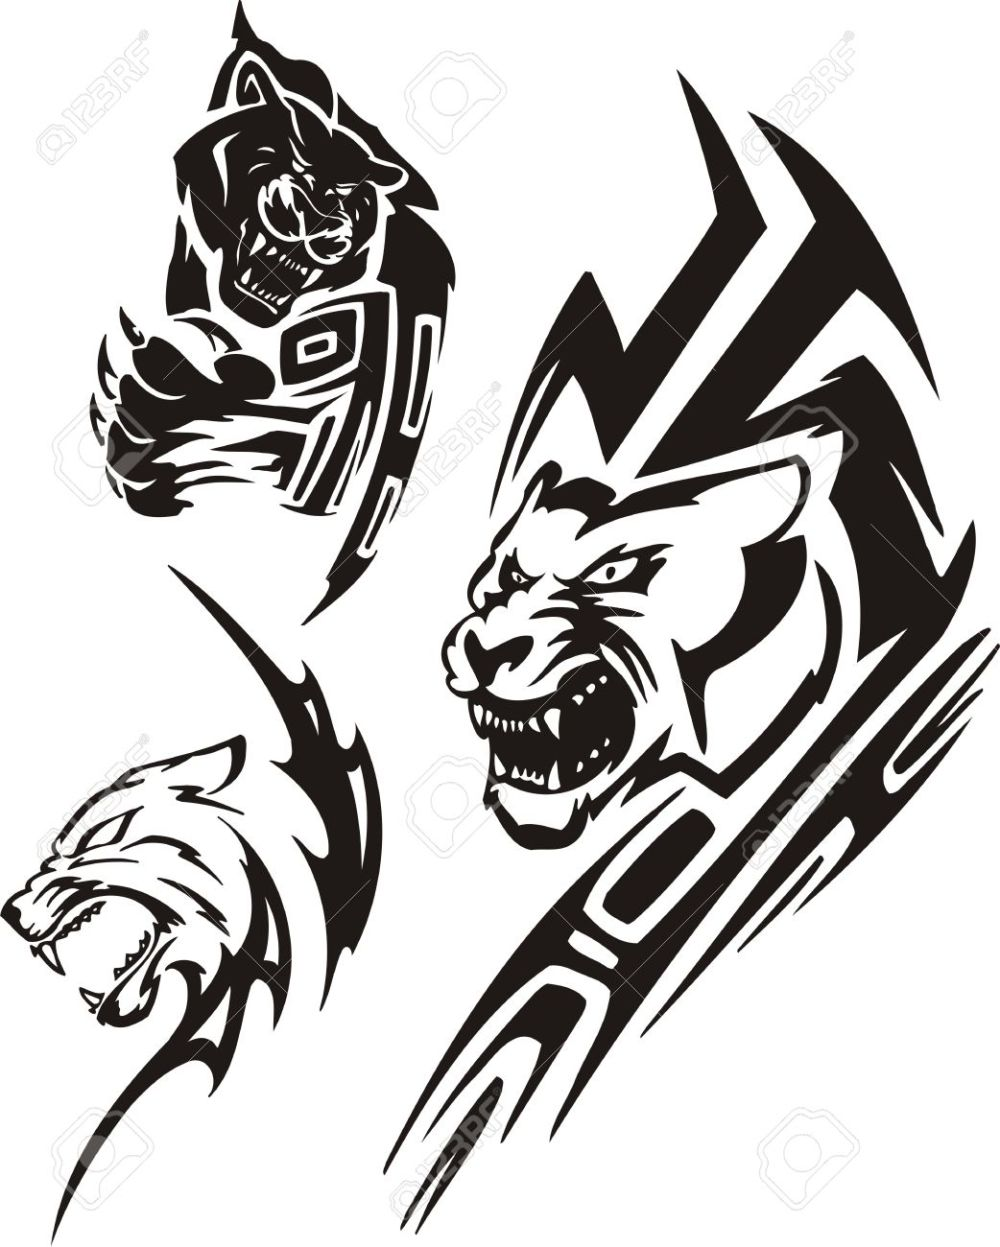 medium resolution of panther with sharp unguises and a lioness tribal predators vector illustration ready for vinyl